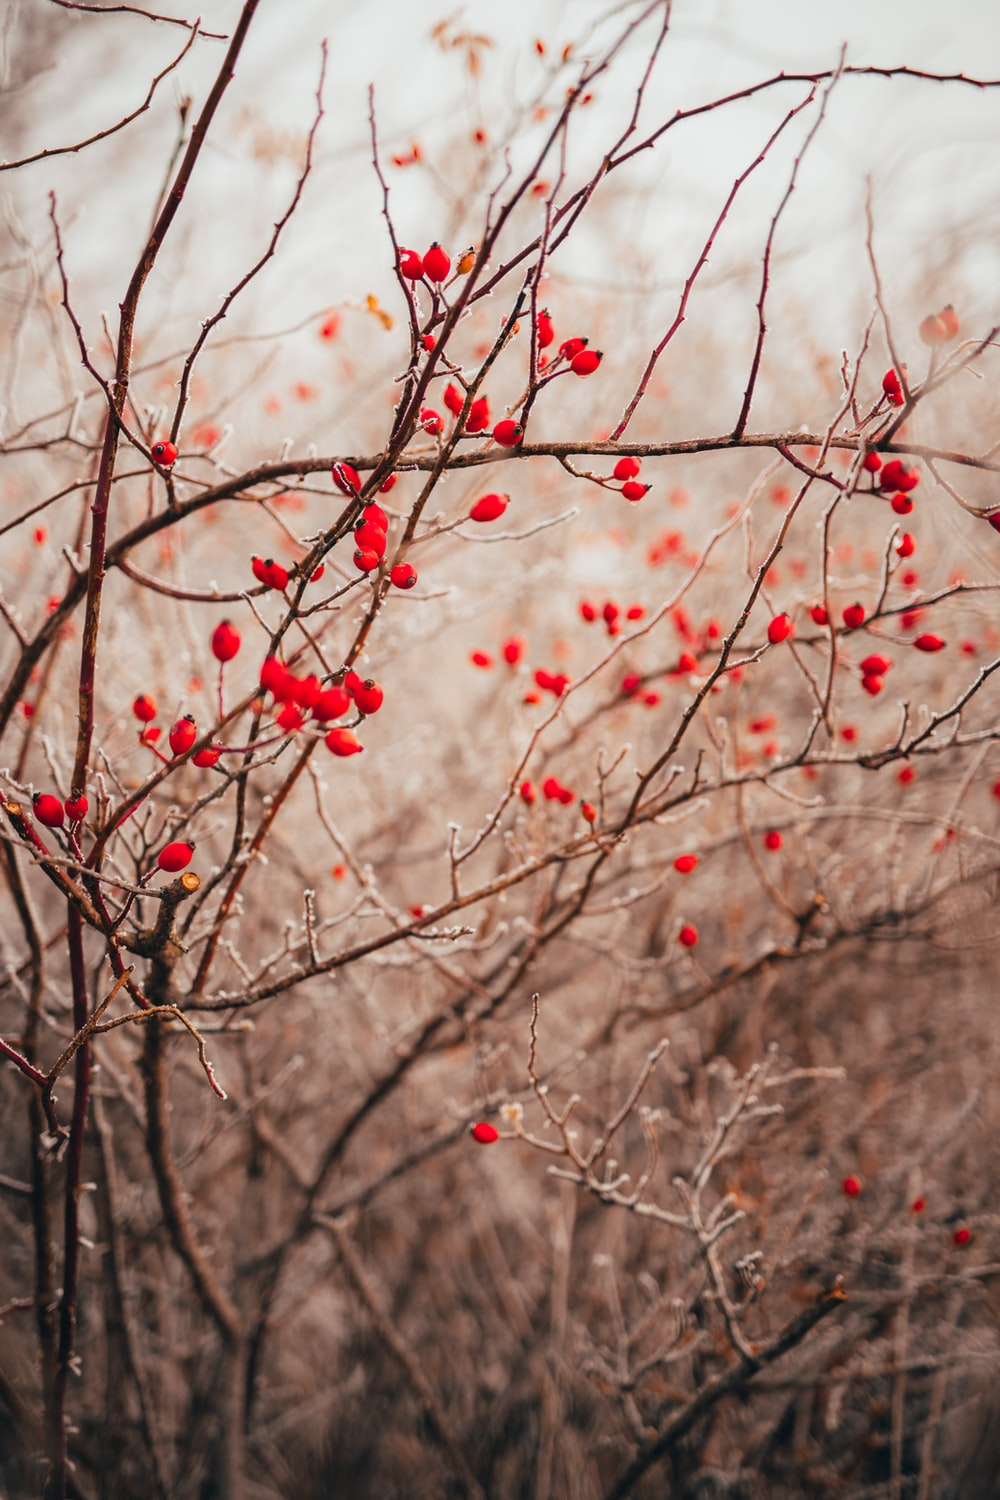 red round fruits on tree branch